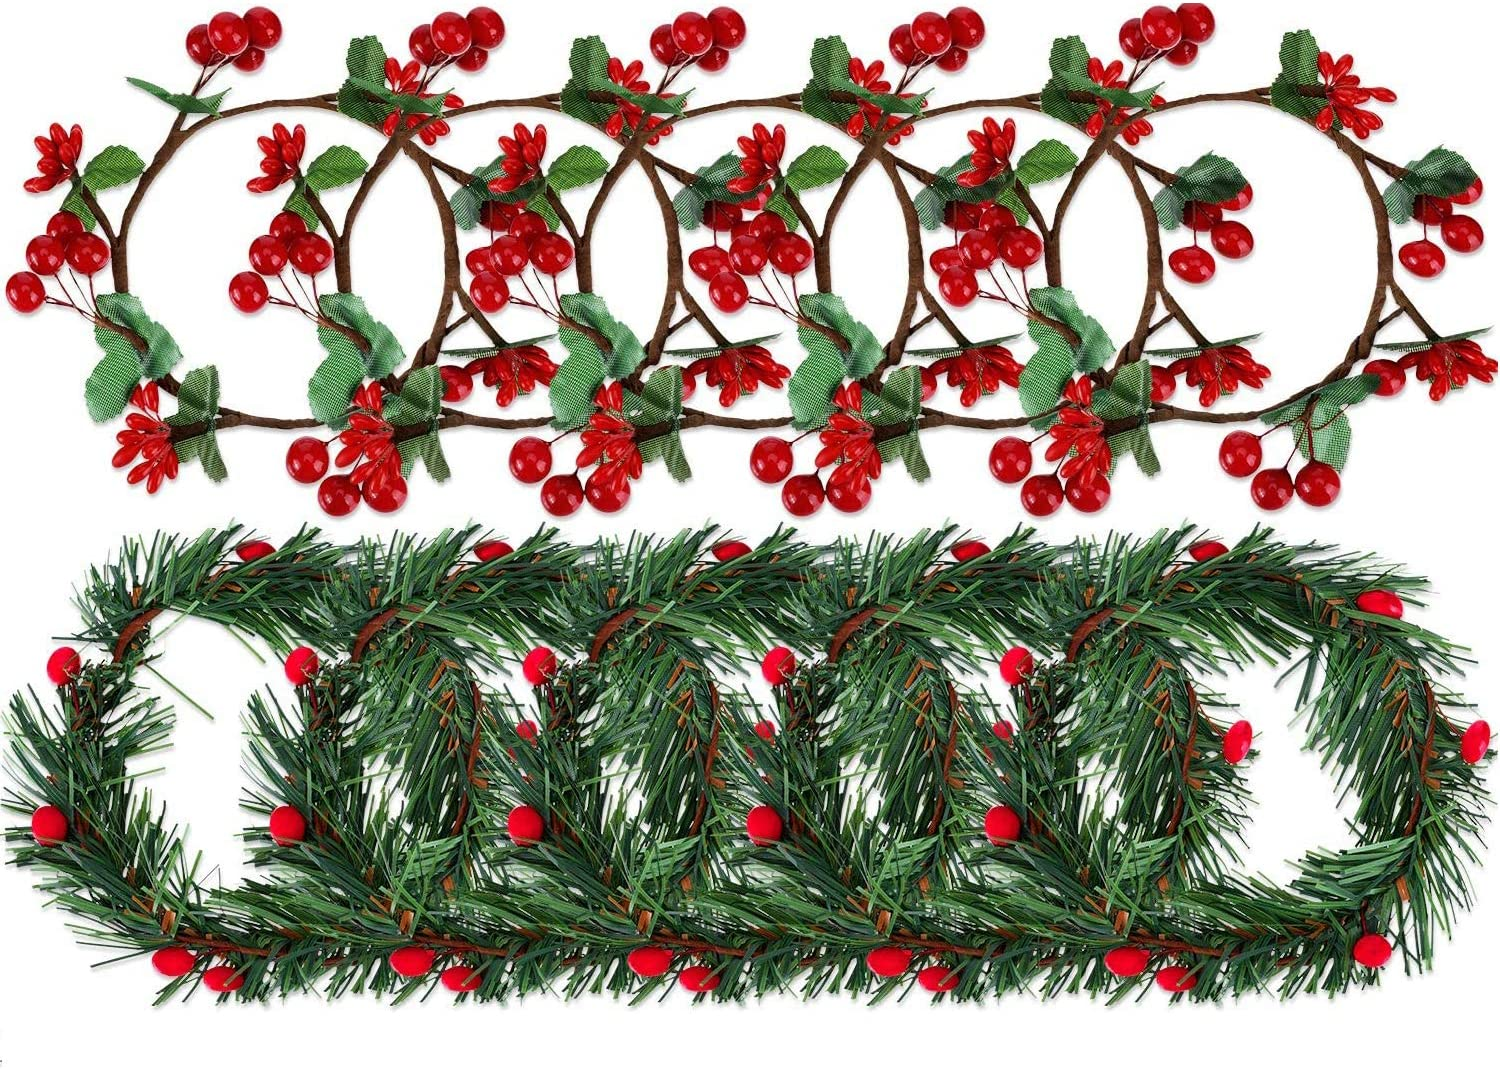 Christmas Candle Ring, Artificial Berry Candle Rings Small Wreath for Pillar Candle Rustic Wedding Centerpiece and Christmas Holiday Table Decoration (3 inch)